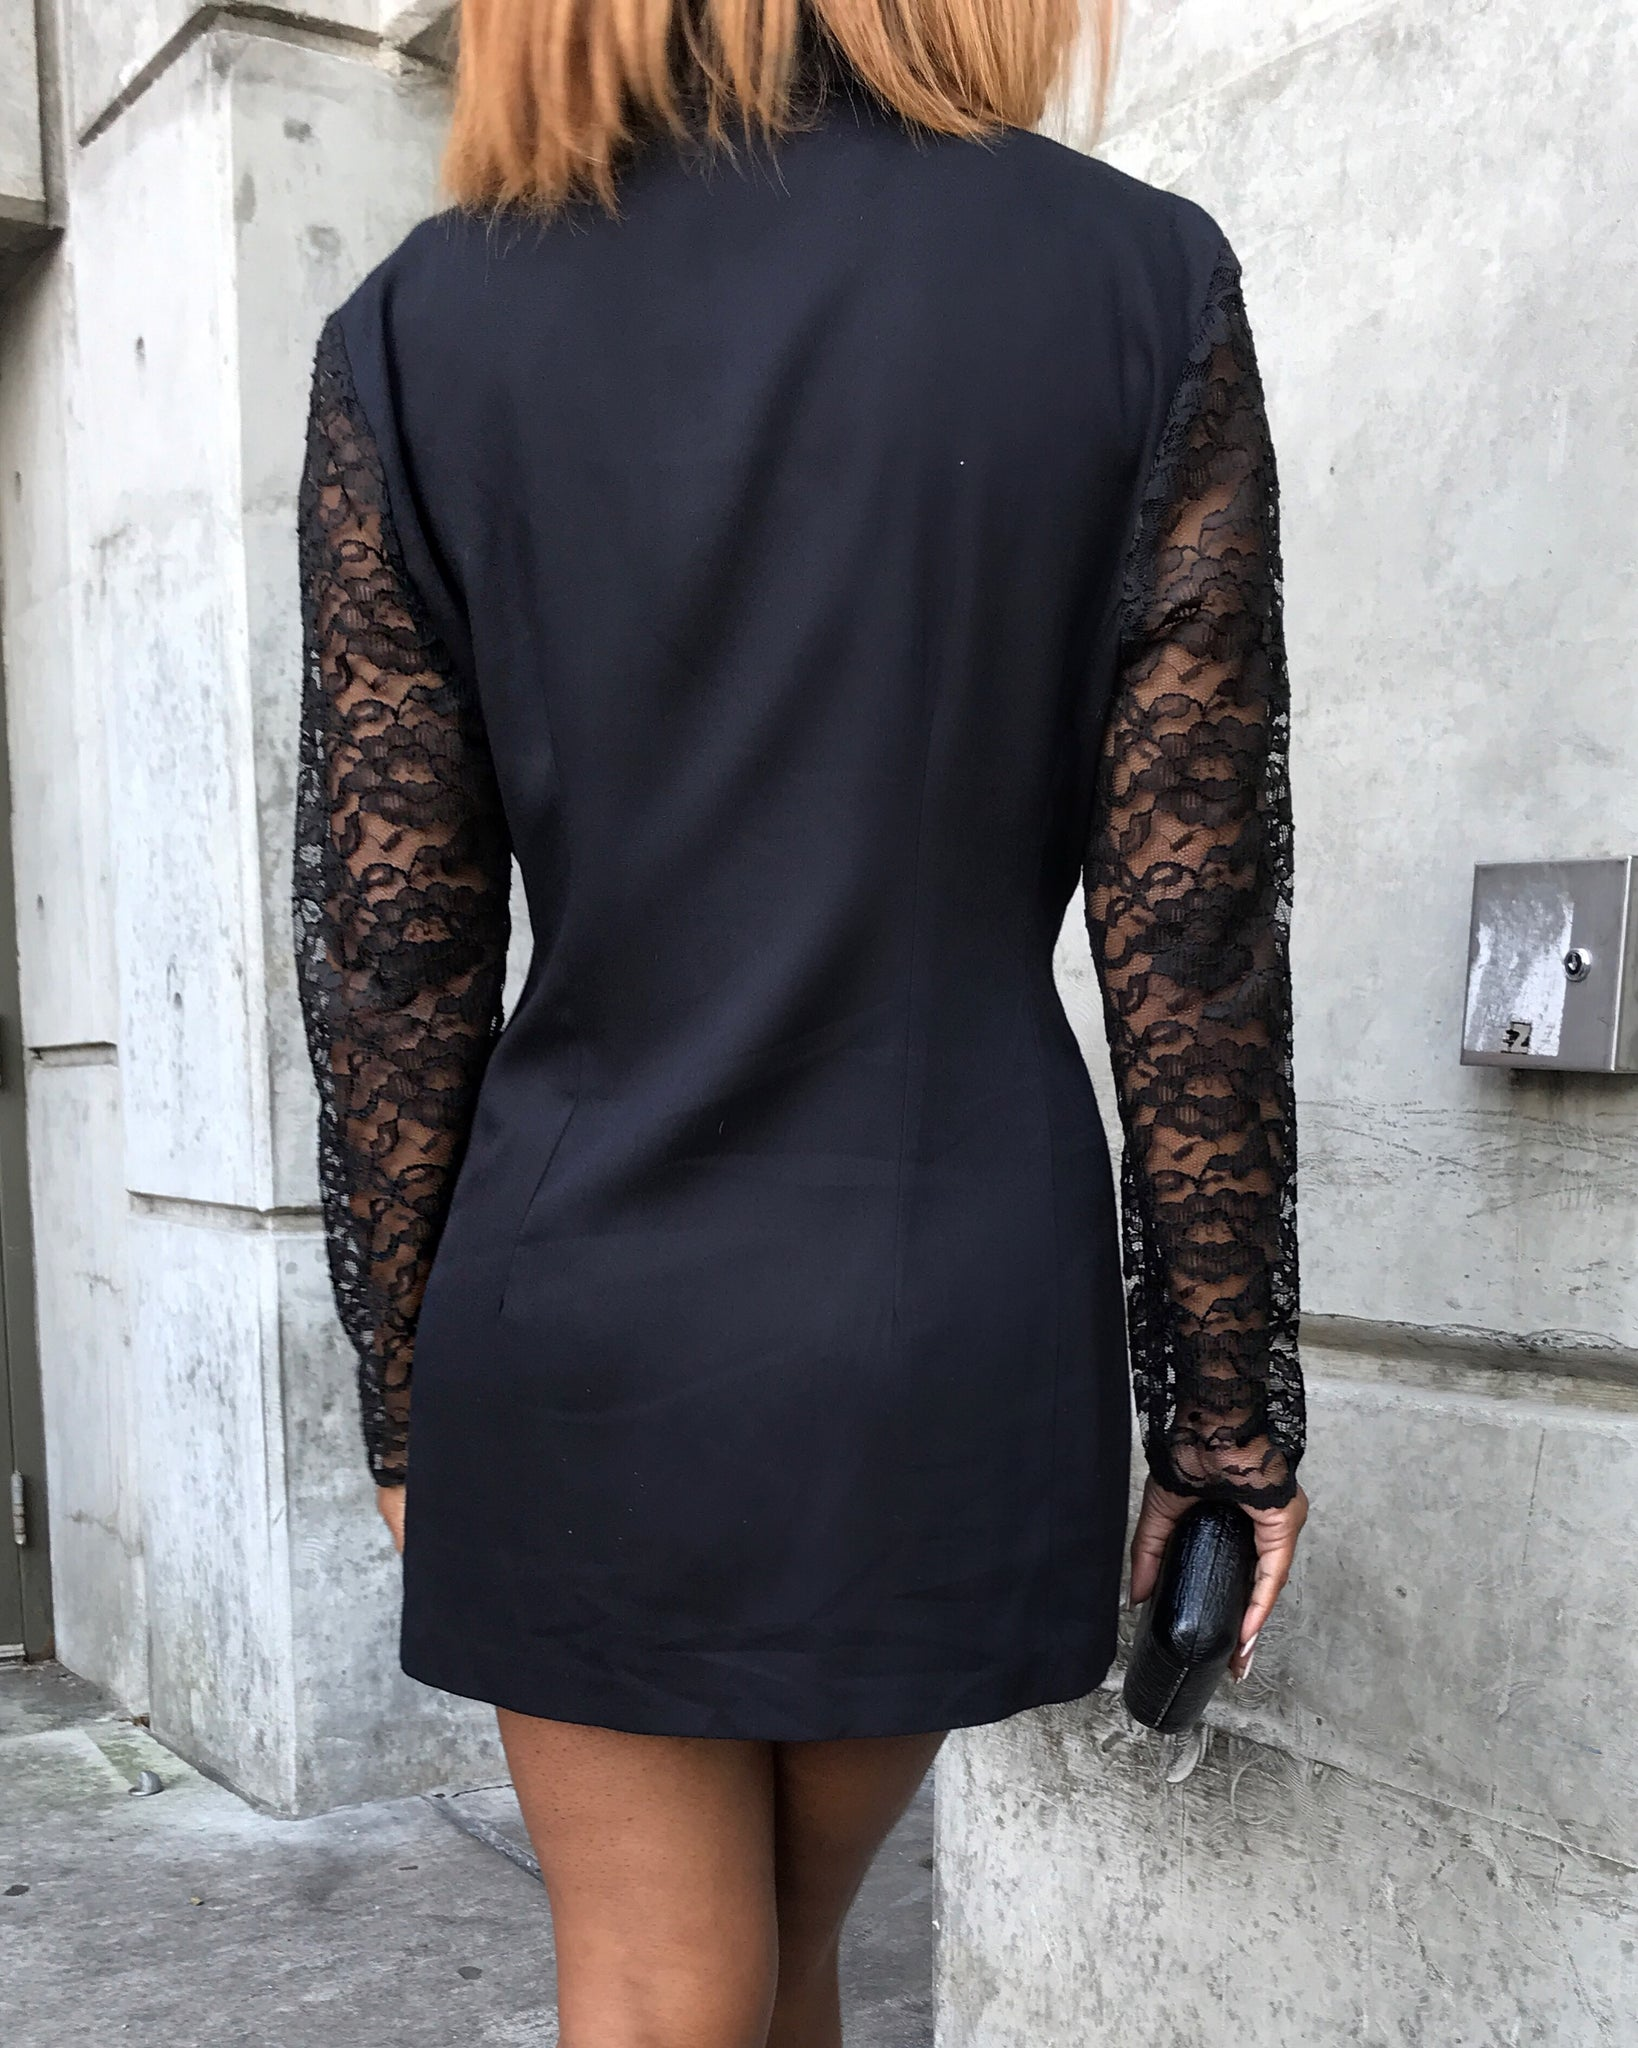 Black Mini Double-Breasted Blazer Dress w/ Lace Sleeves